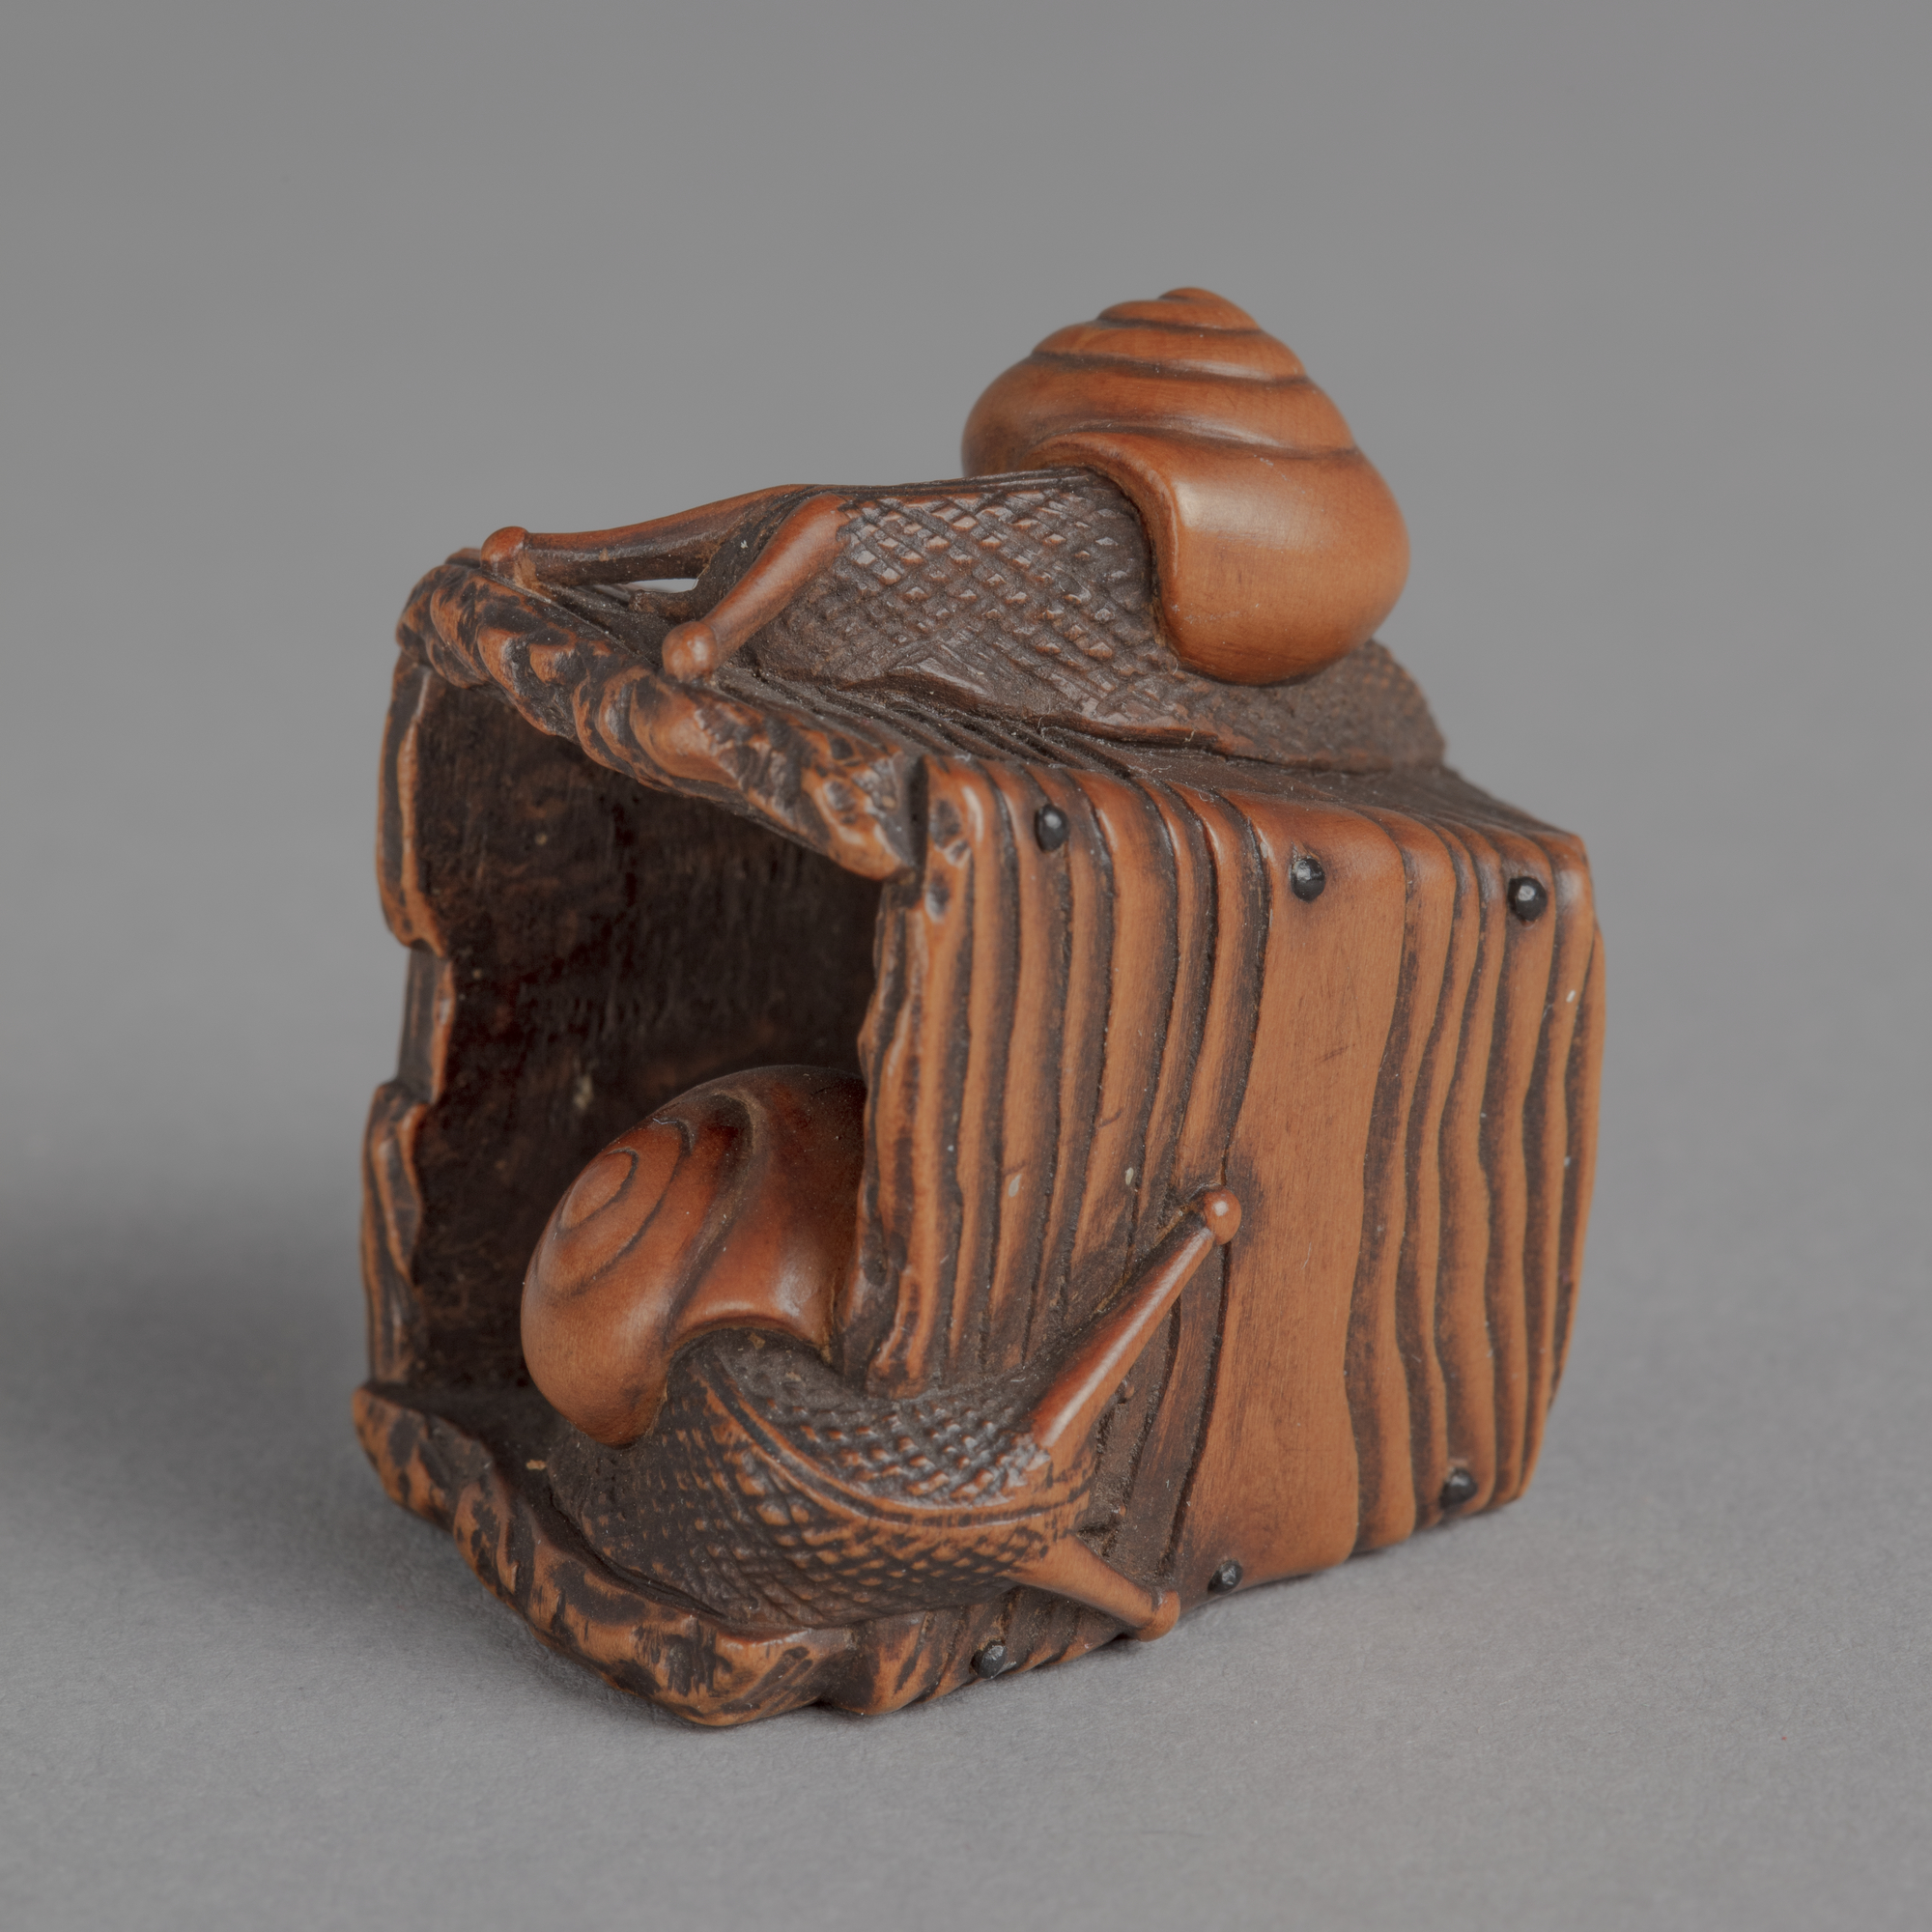 A Japanese boxwood netsuke of a pyriform wooden well bucket with one snail on top and one snail inside.